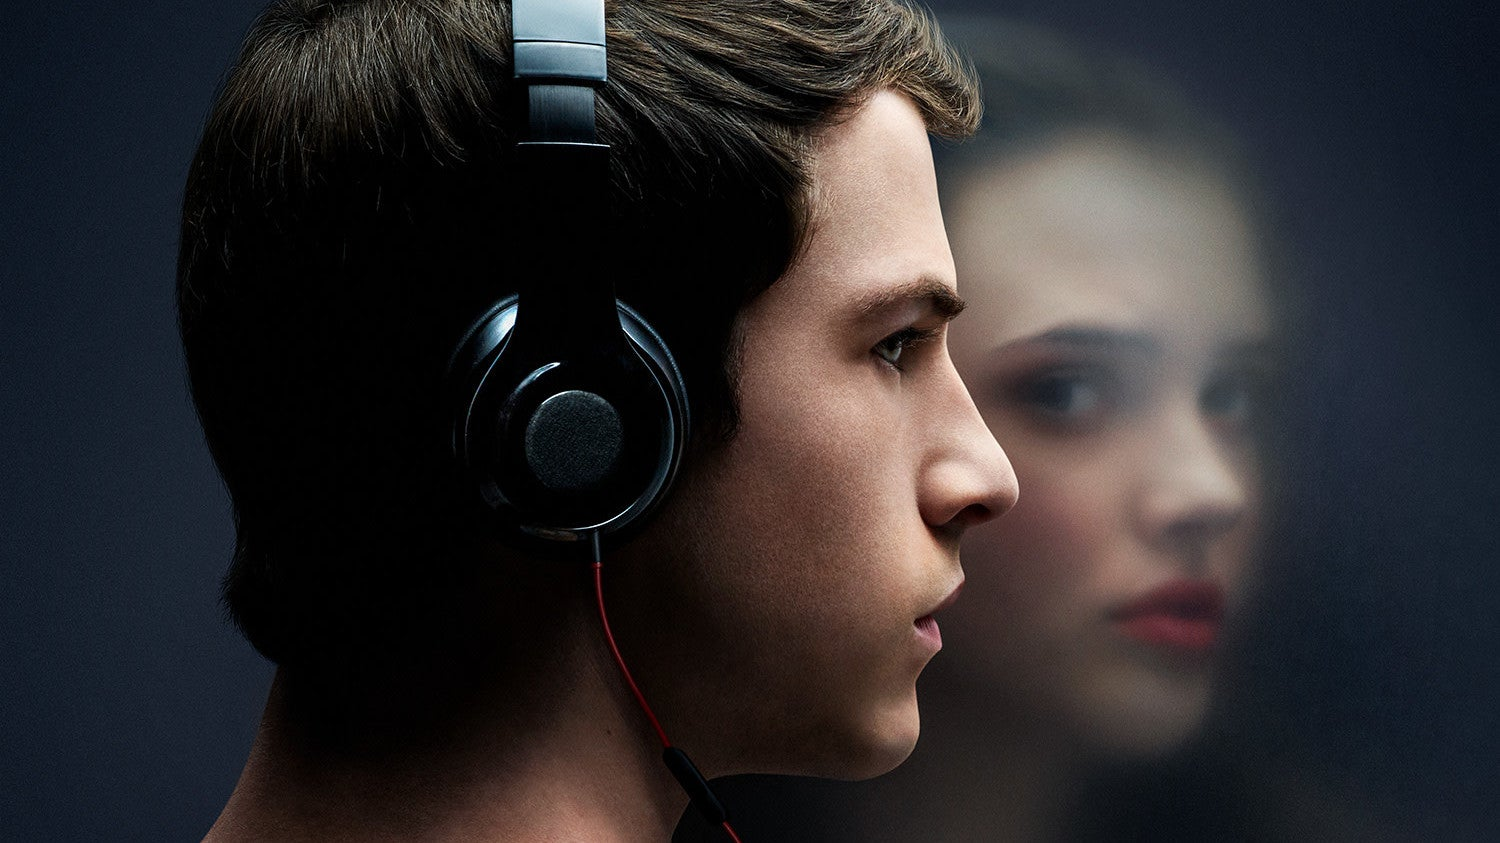 Netflix Edits Out Graphic Suicide Scene From 13 Reasons Why As It Prepares New Season